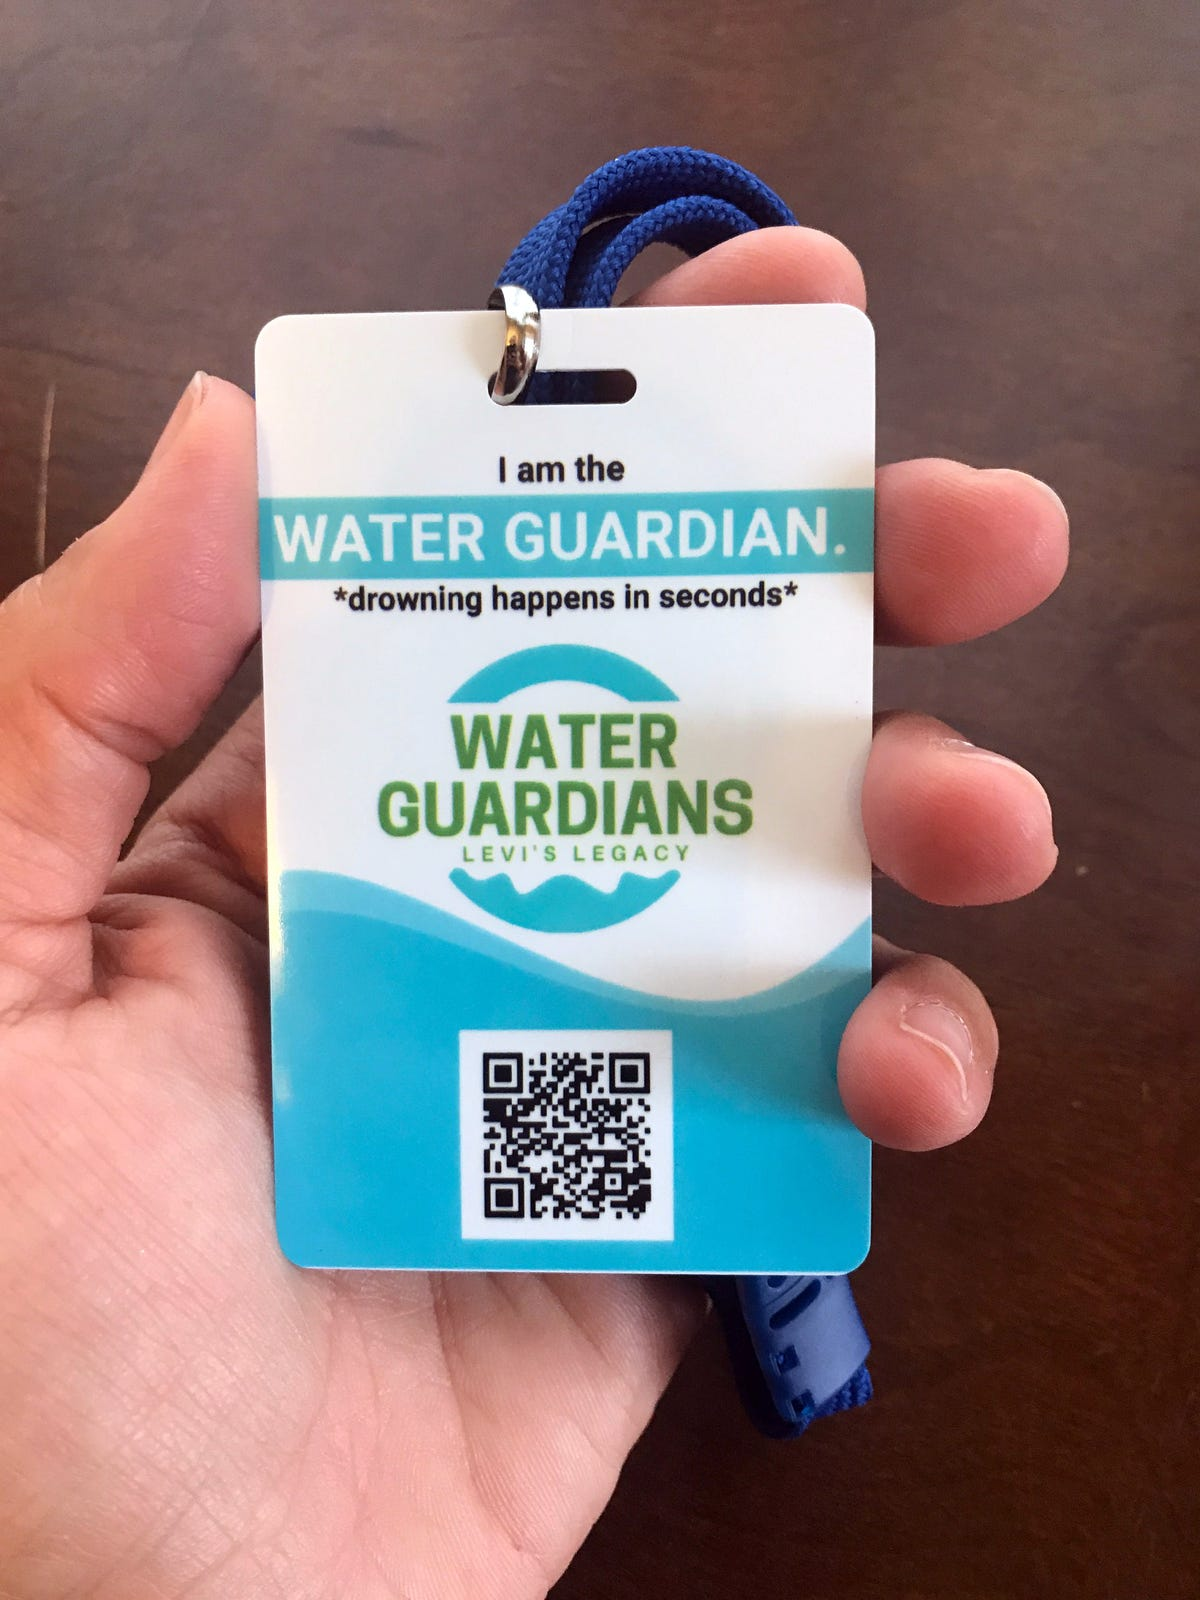 Baby drowning tragedy: Tennessee mom creates 'water guardian' for son